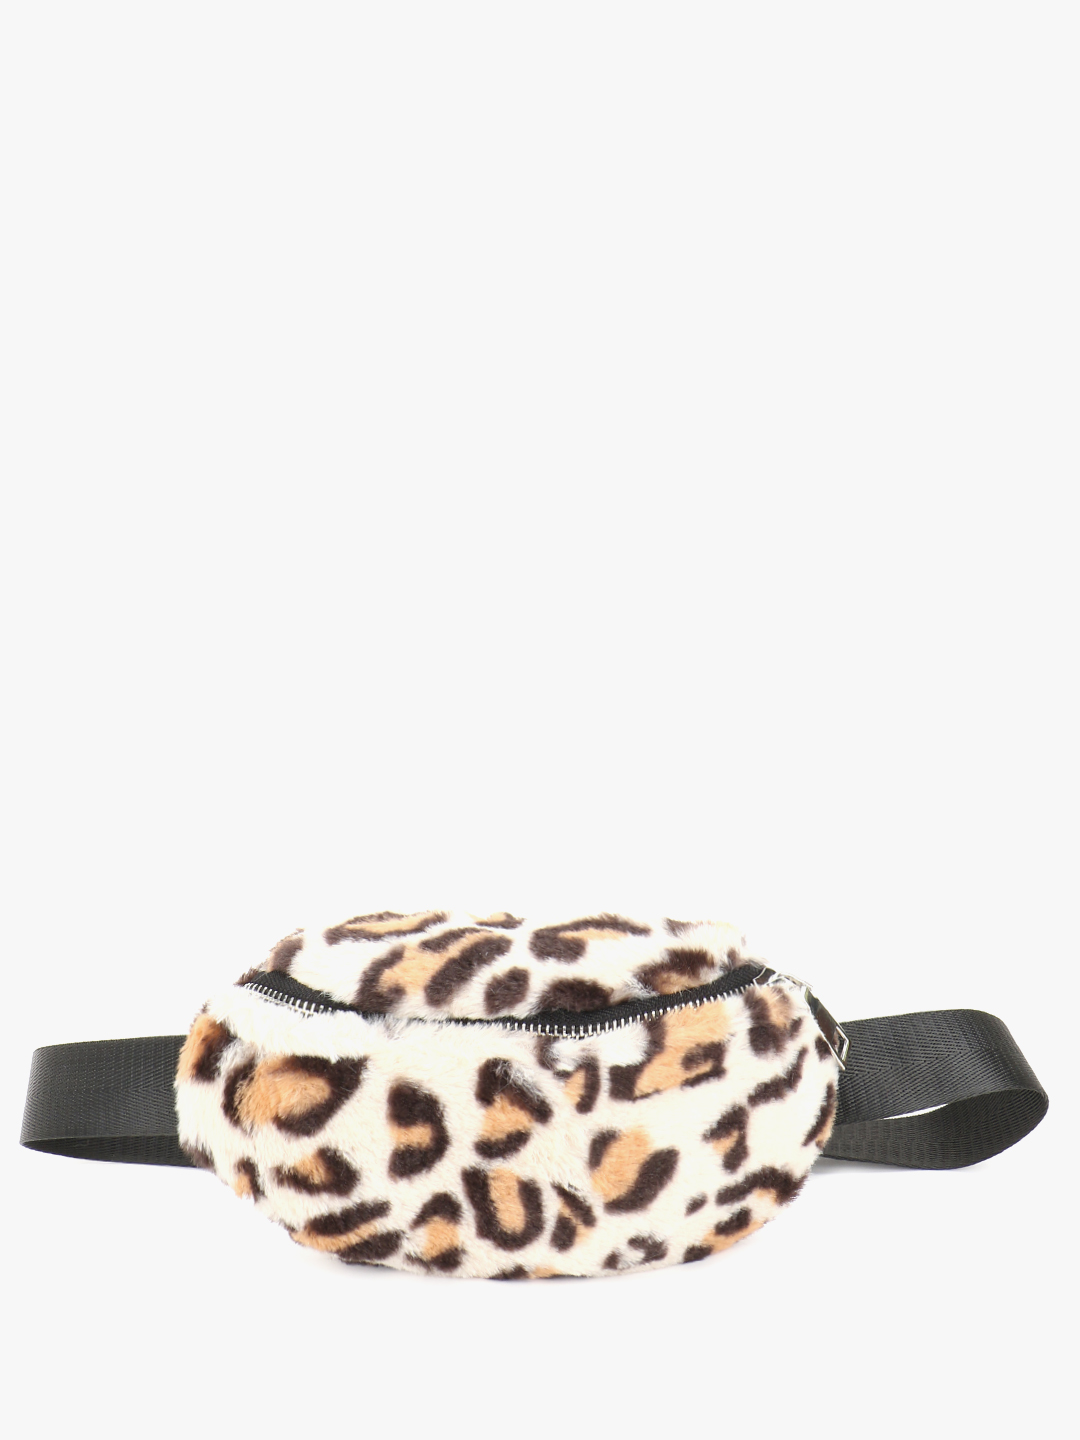 Origami Lily Multi Furry Leopard Print Bum Bag 1